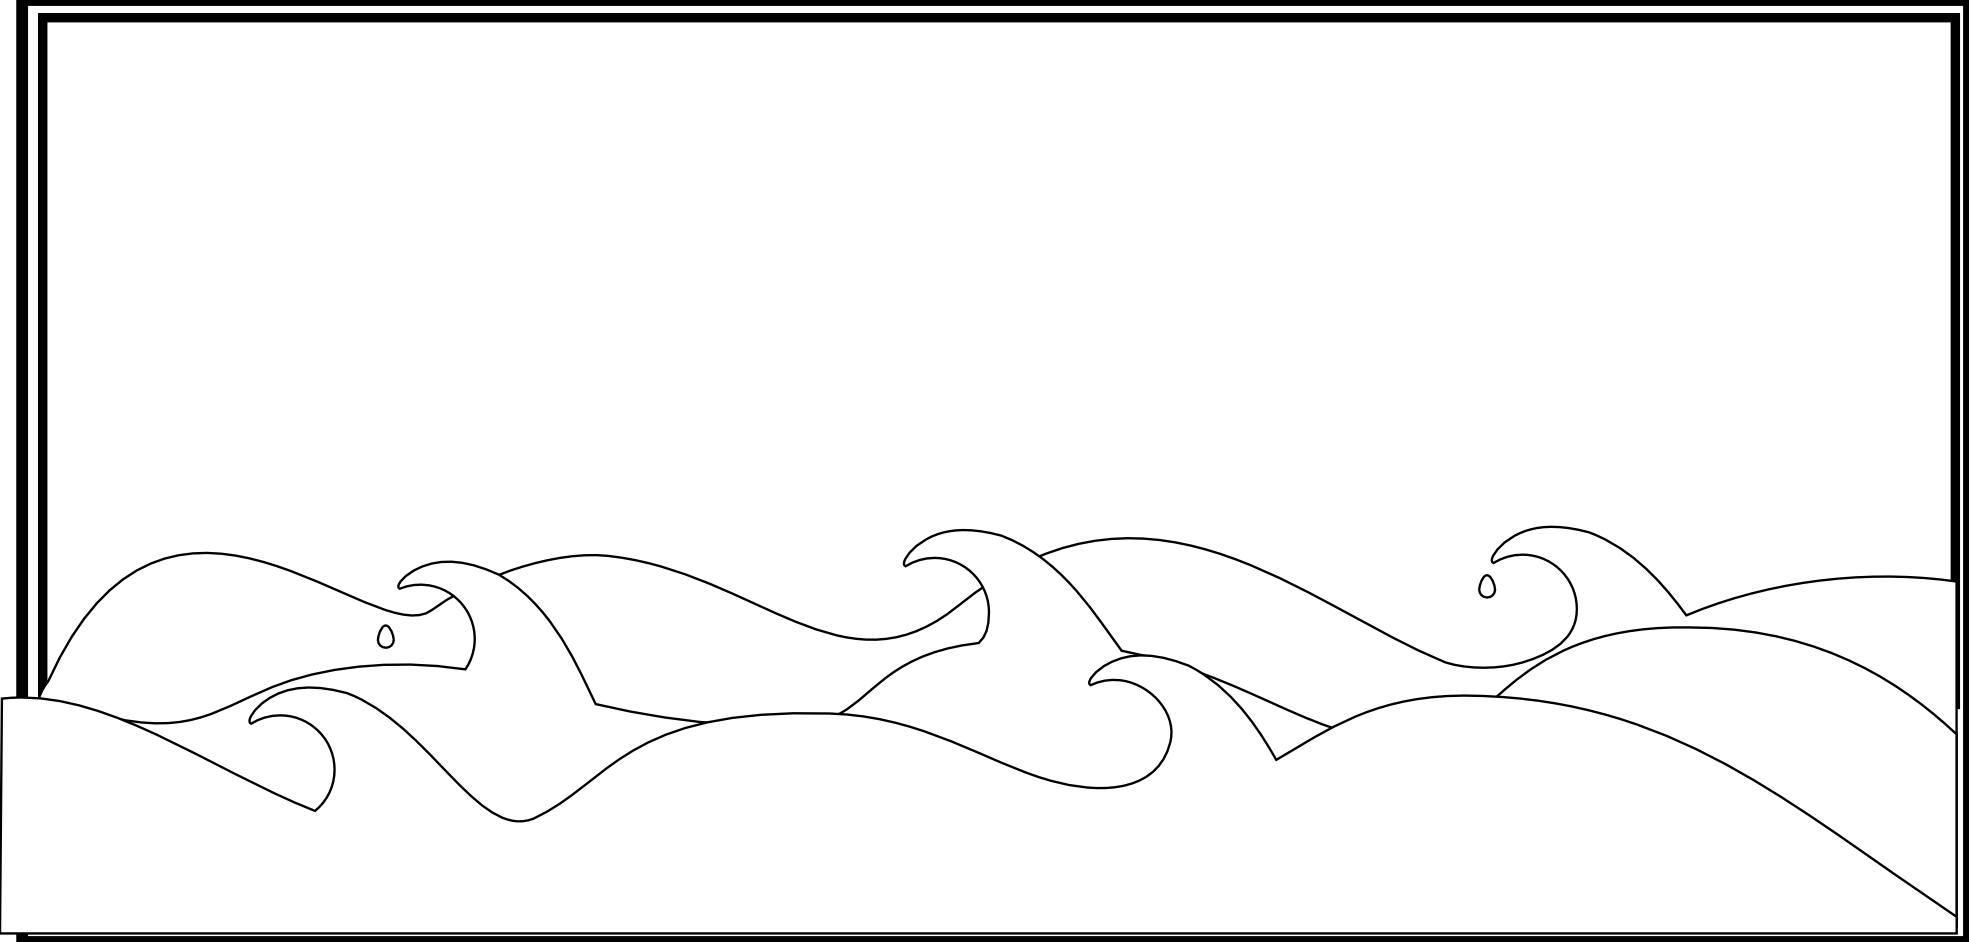 Ocean Waves Coloring Sheets Printablecolouringpages Co Uks